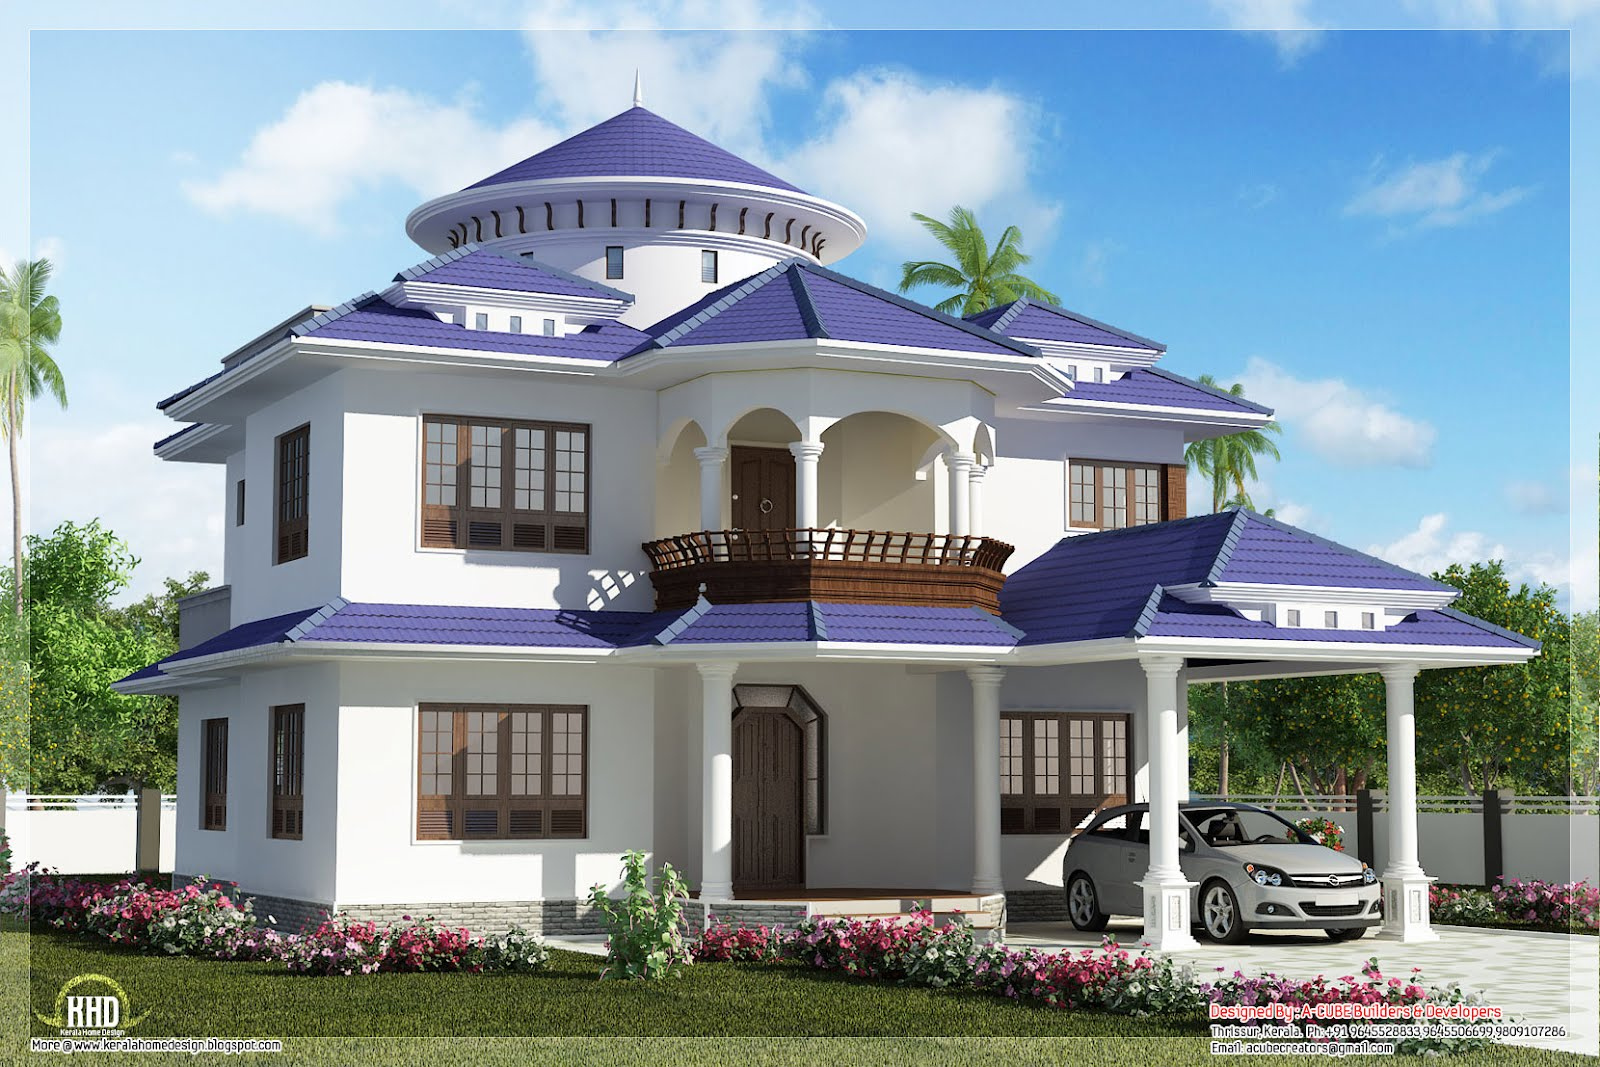 Magnificent Dreamhouse Design 1600 x 1067 · 320 kB · jpeg